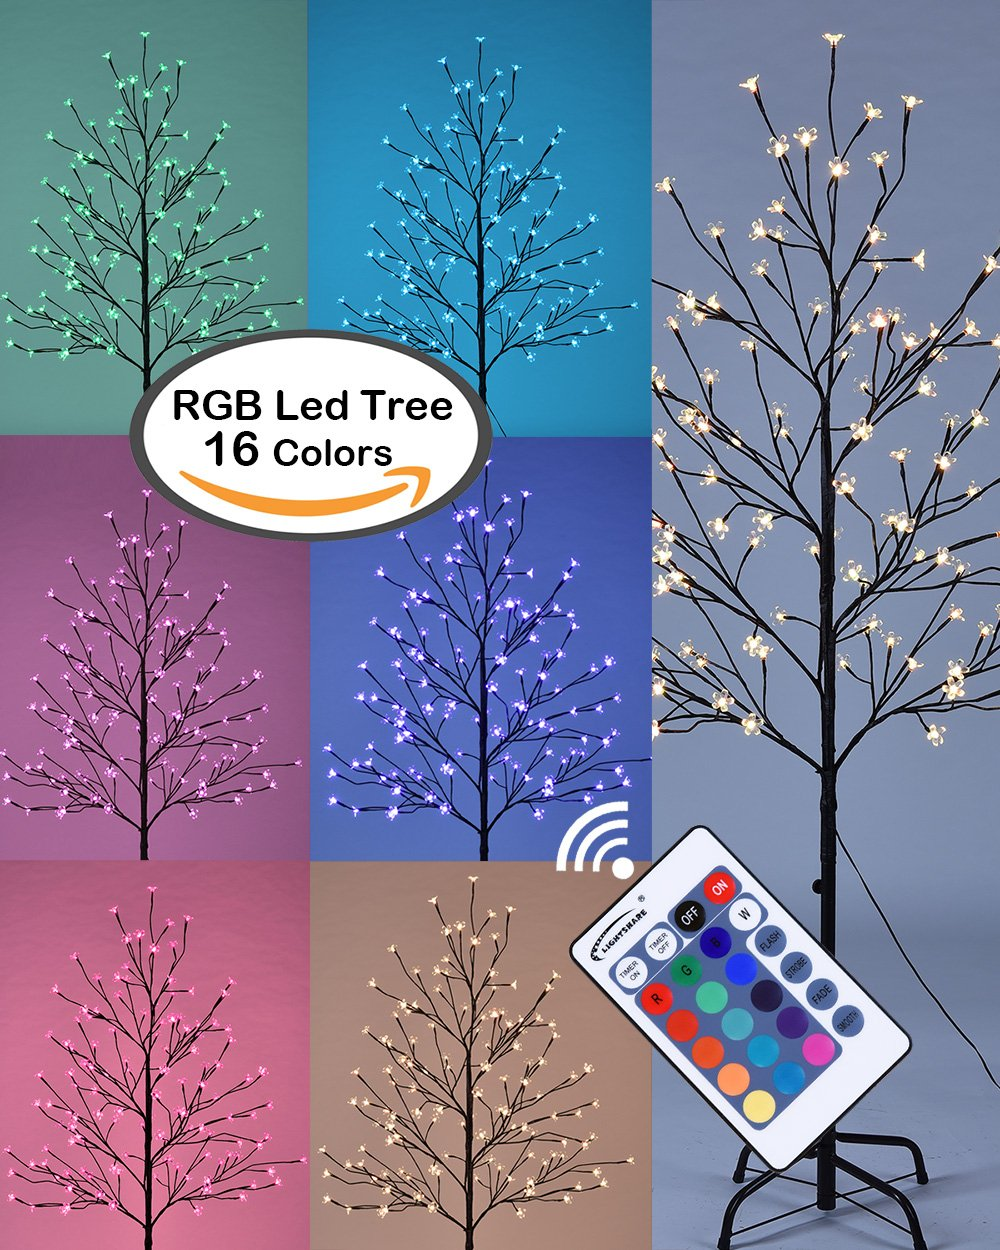 Lightshare 5FT LED Star Light Tree, 5 Feet, RGB With Remote Control, 16 Color-changing Modes